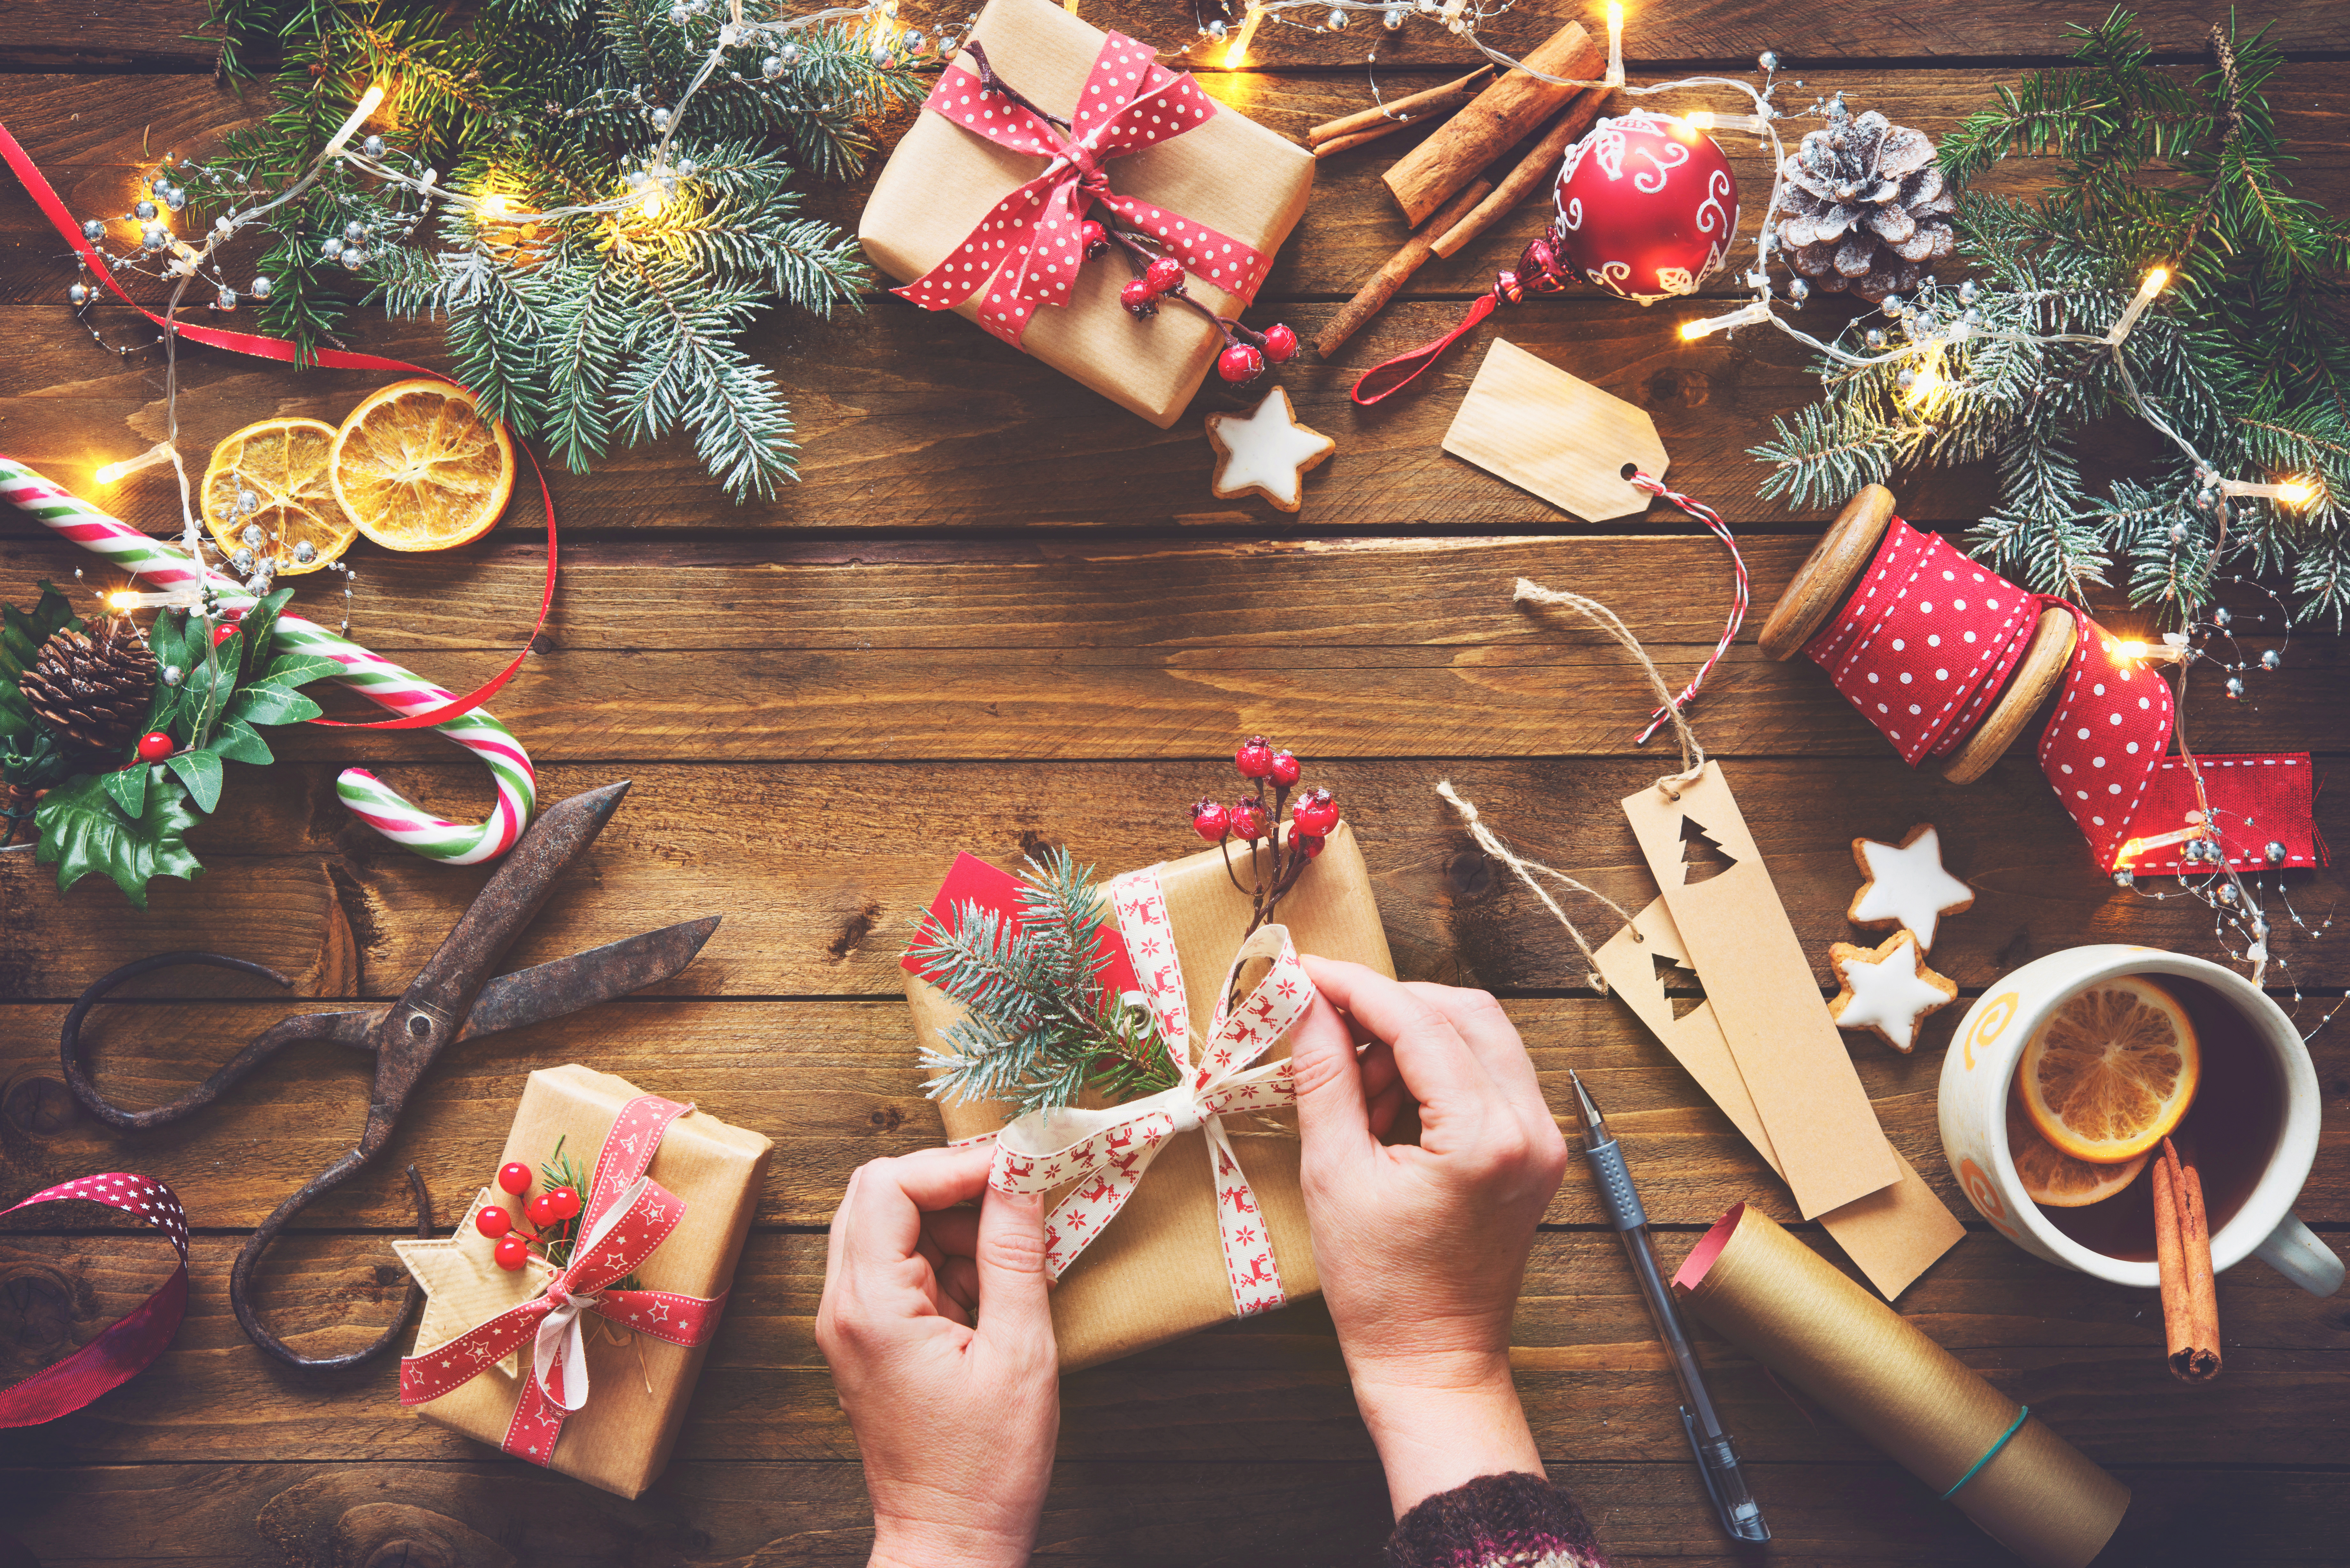 The ultimate 2017 Holiday Gift Guide by The CE Shop